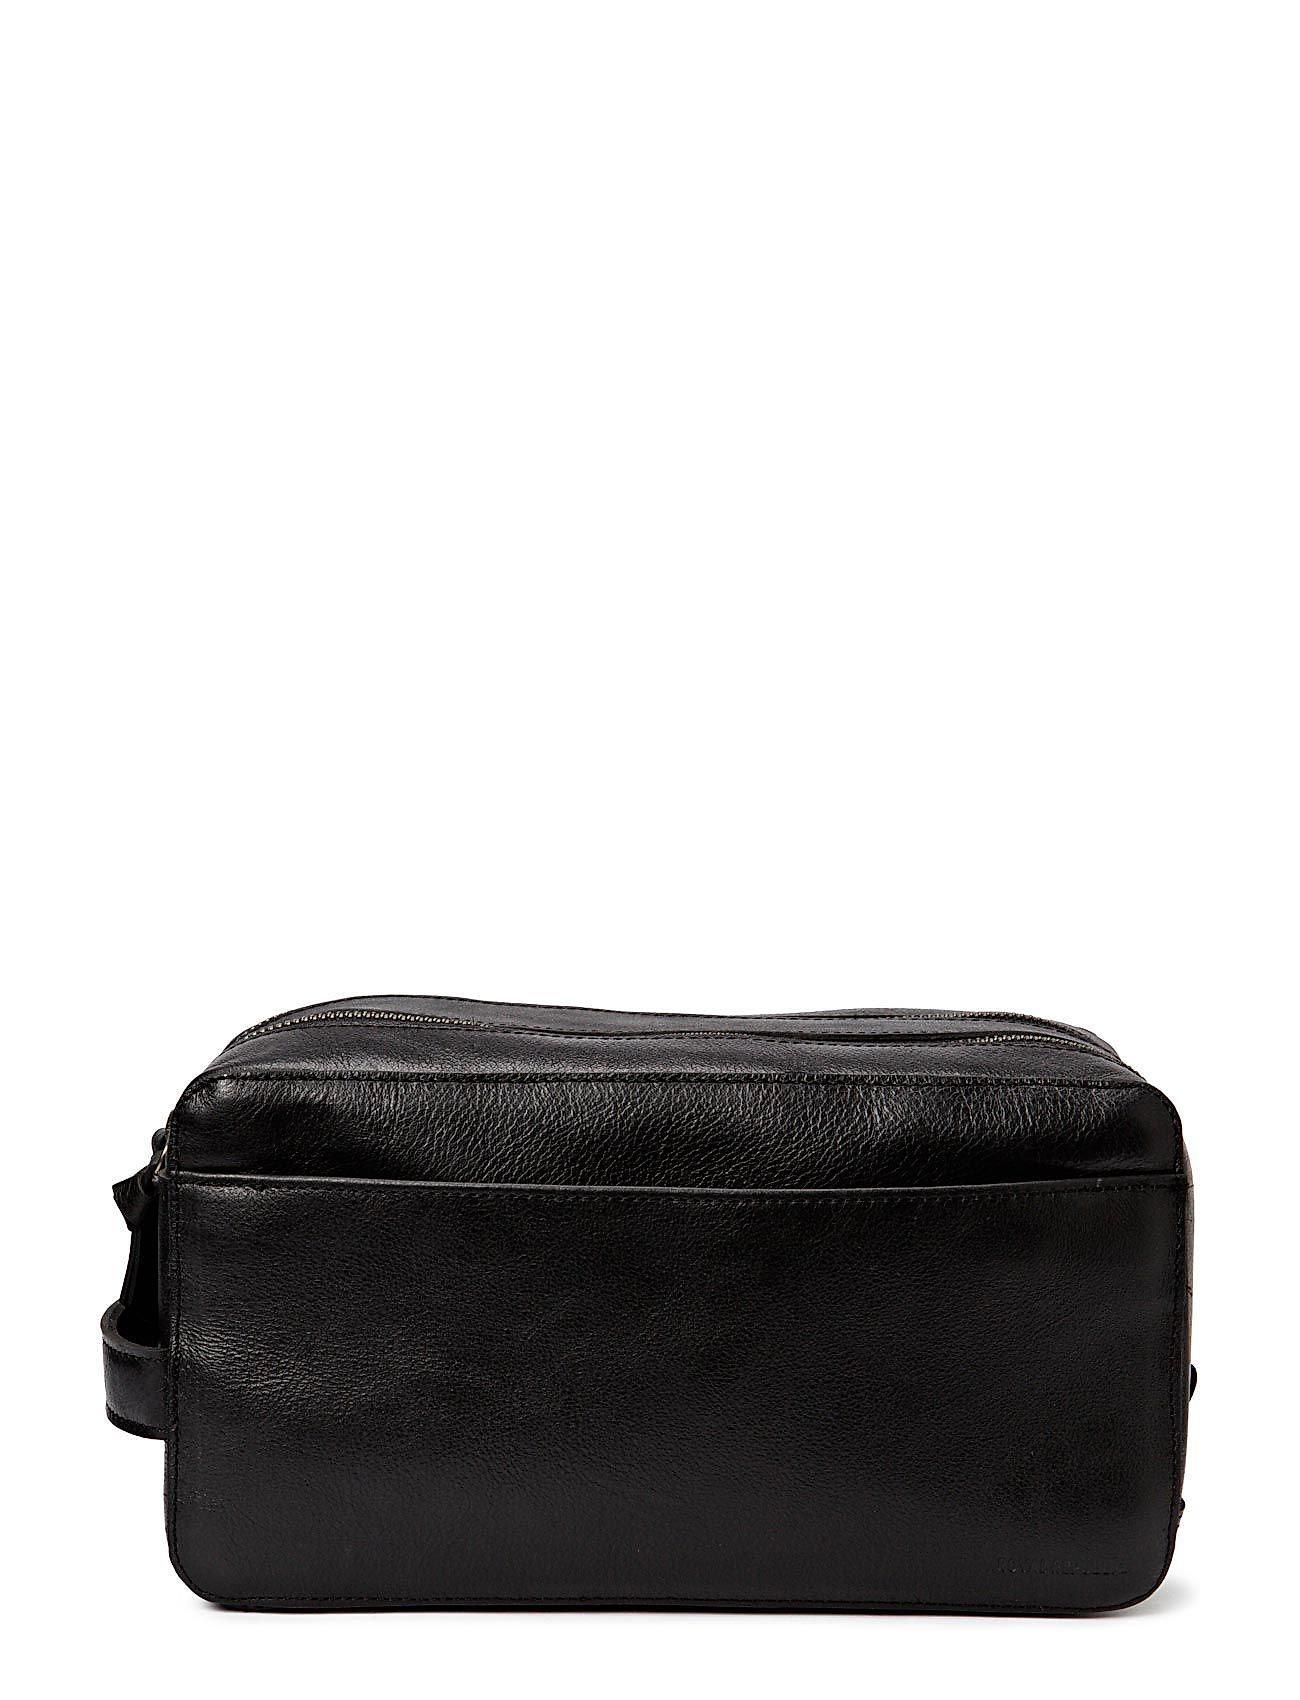 Royal RepubliQ Gemin Toilet bag - BLACK